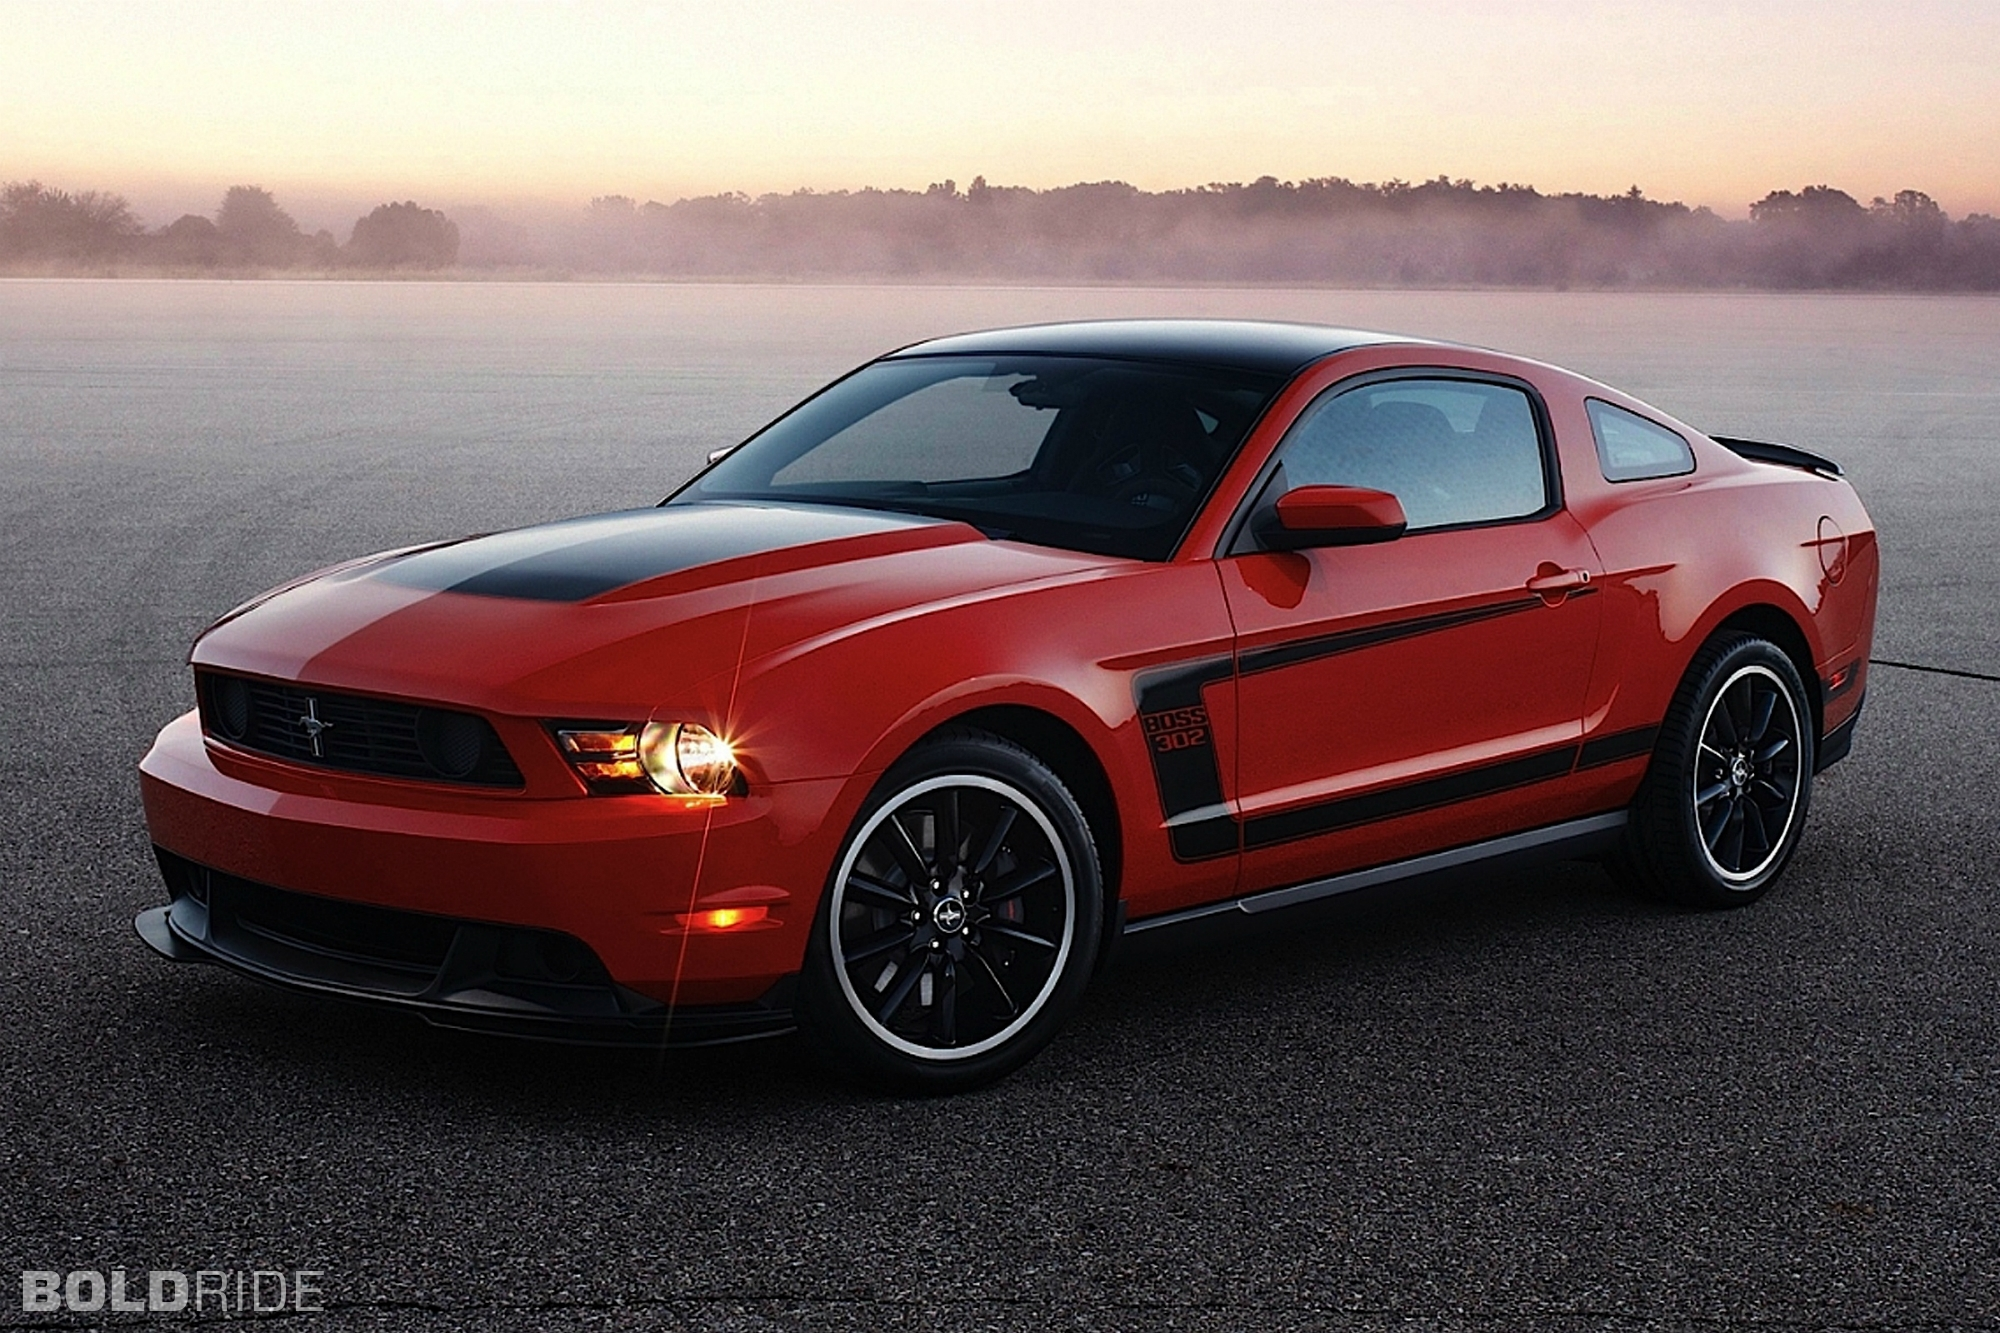 ford mustang 302 boss wallpaper 2000x1333 16837. Black Bedroom Furniture Sets. Home Design Ideas